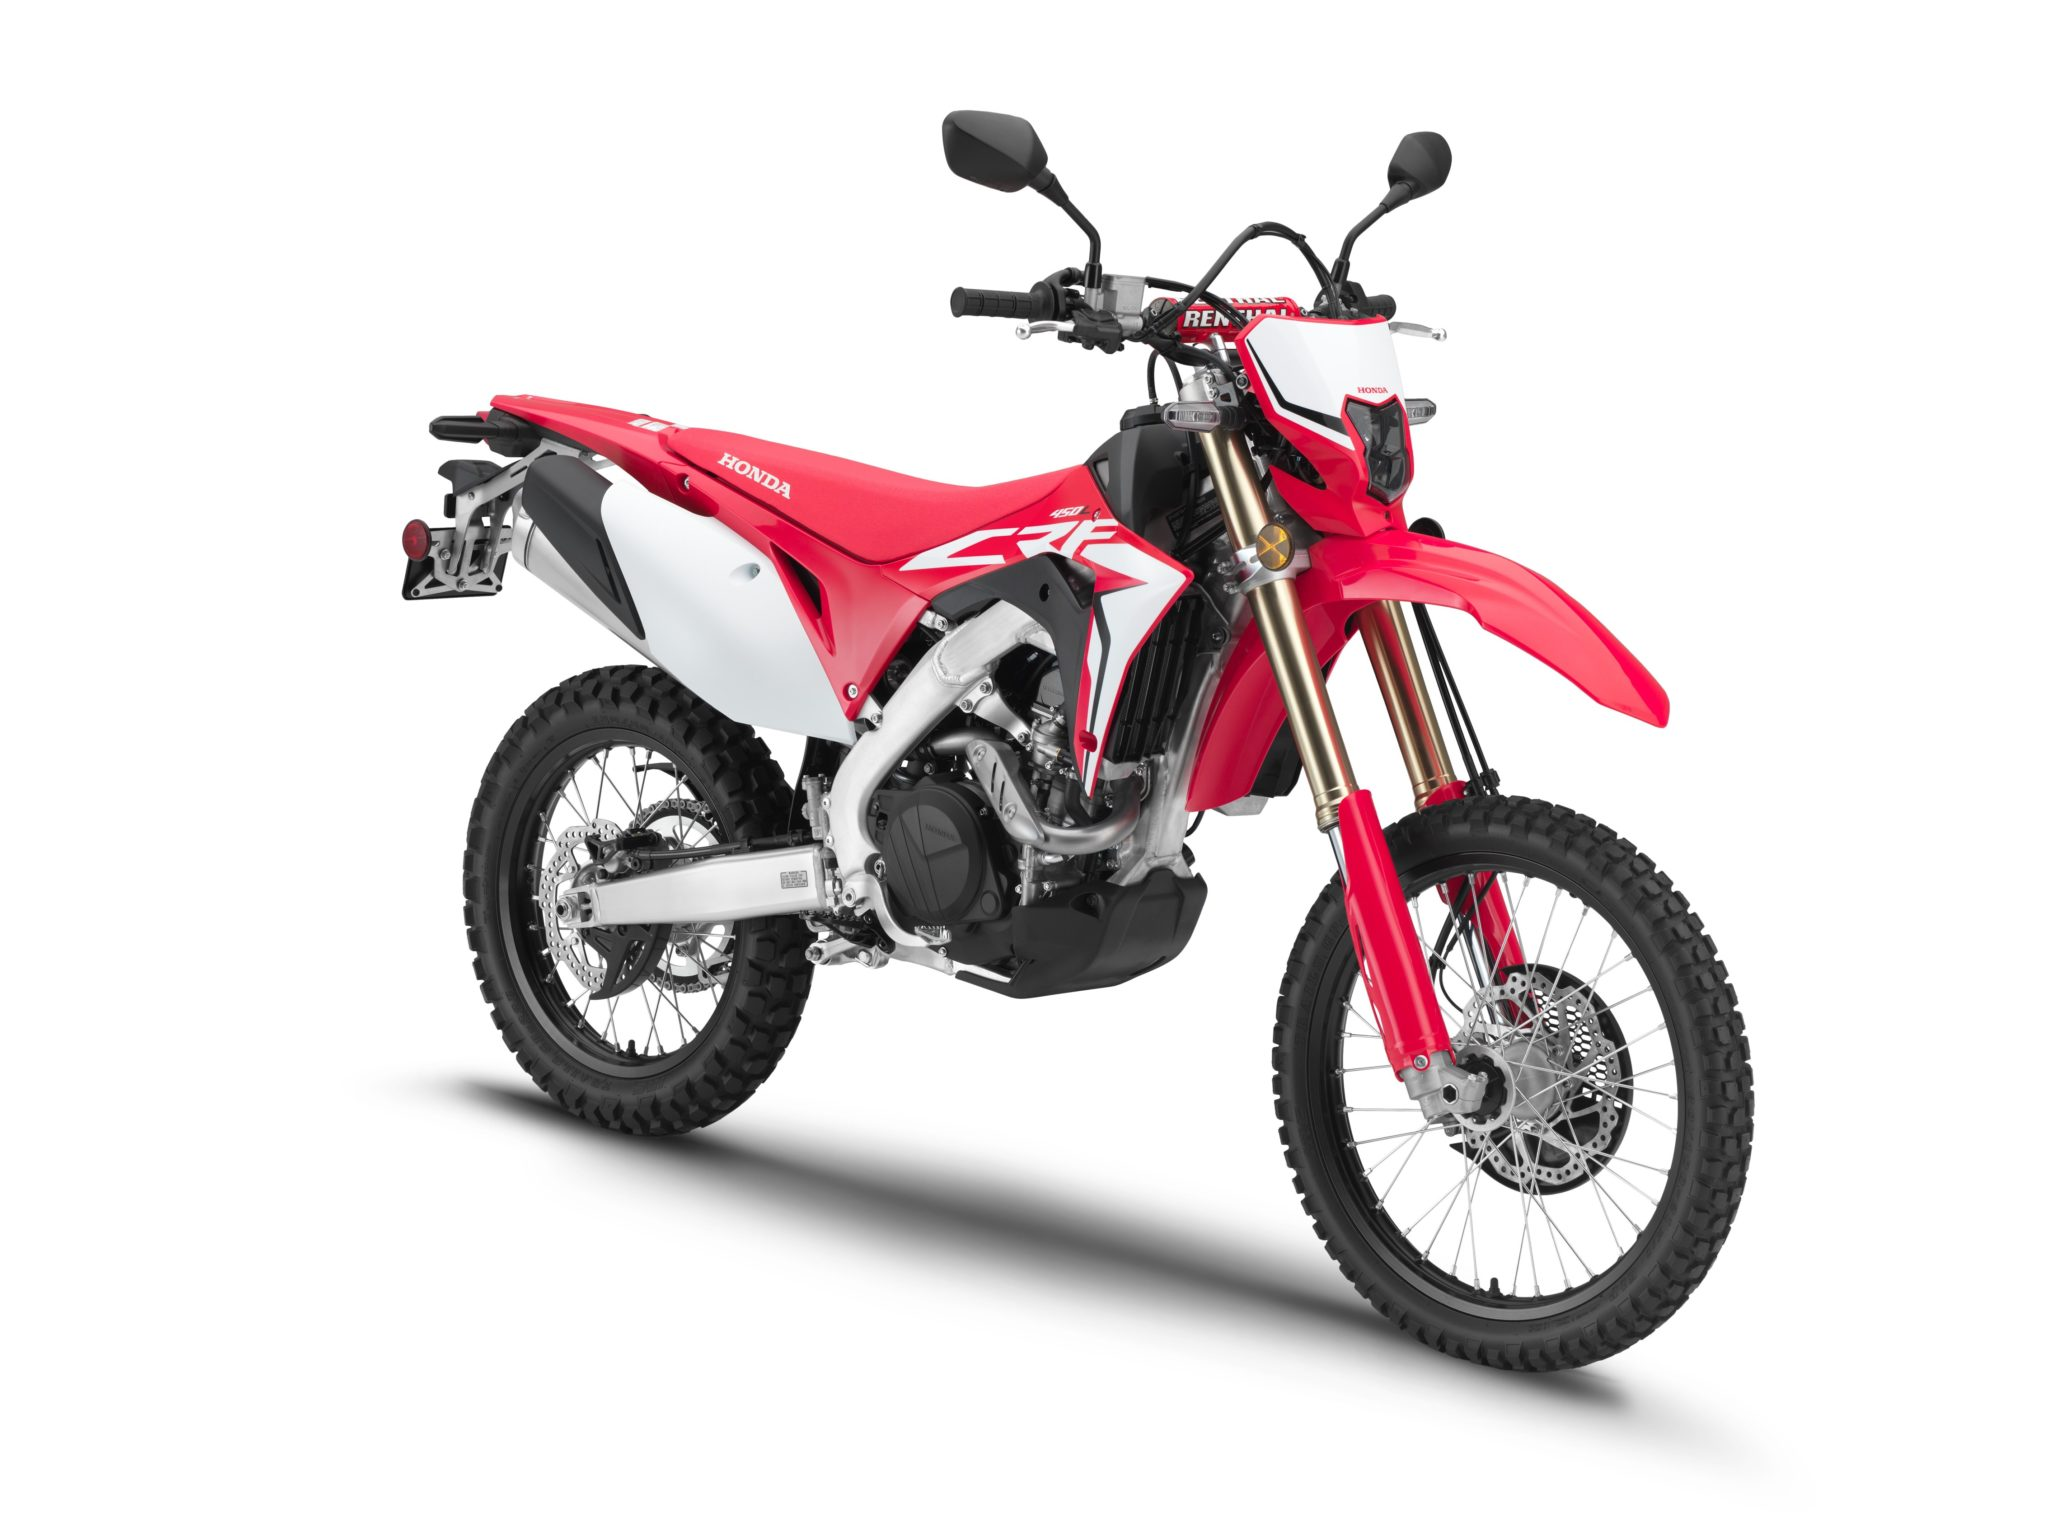 Honda shows the new CRF line-up for 2019!